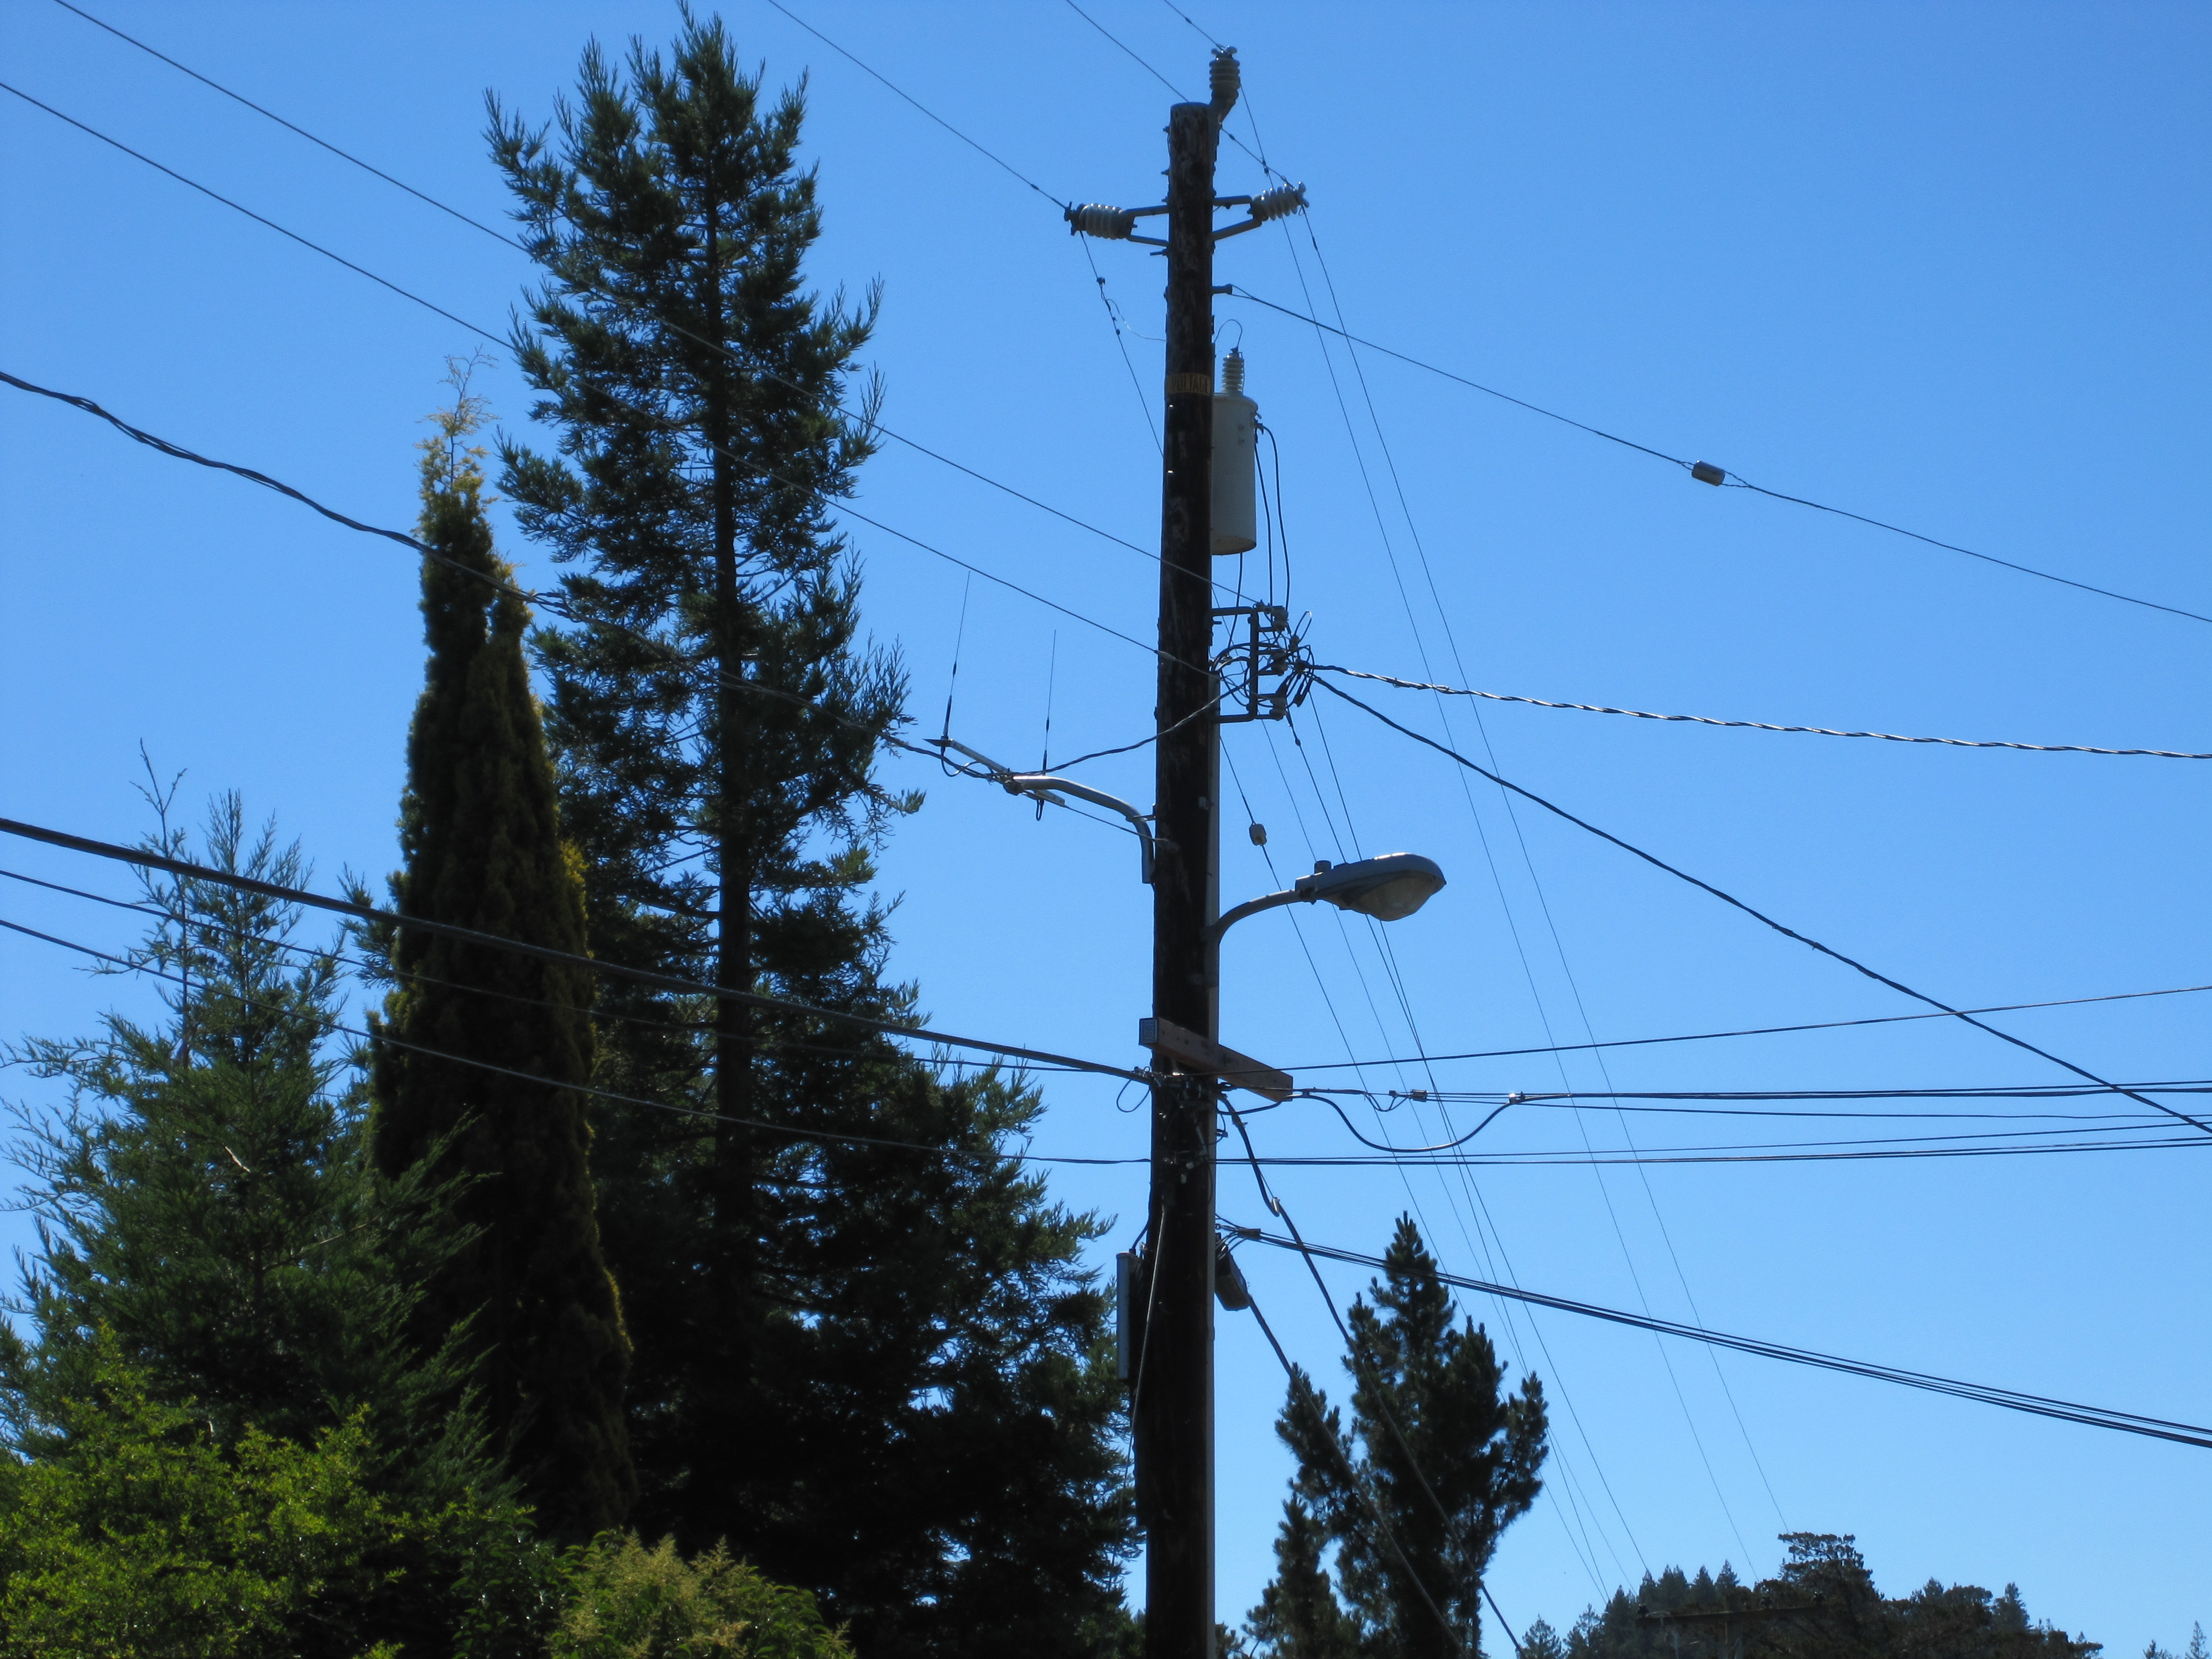 Electrical Power Poles : How pg e is breaking the law and forcing smart meters onto